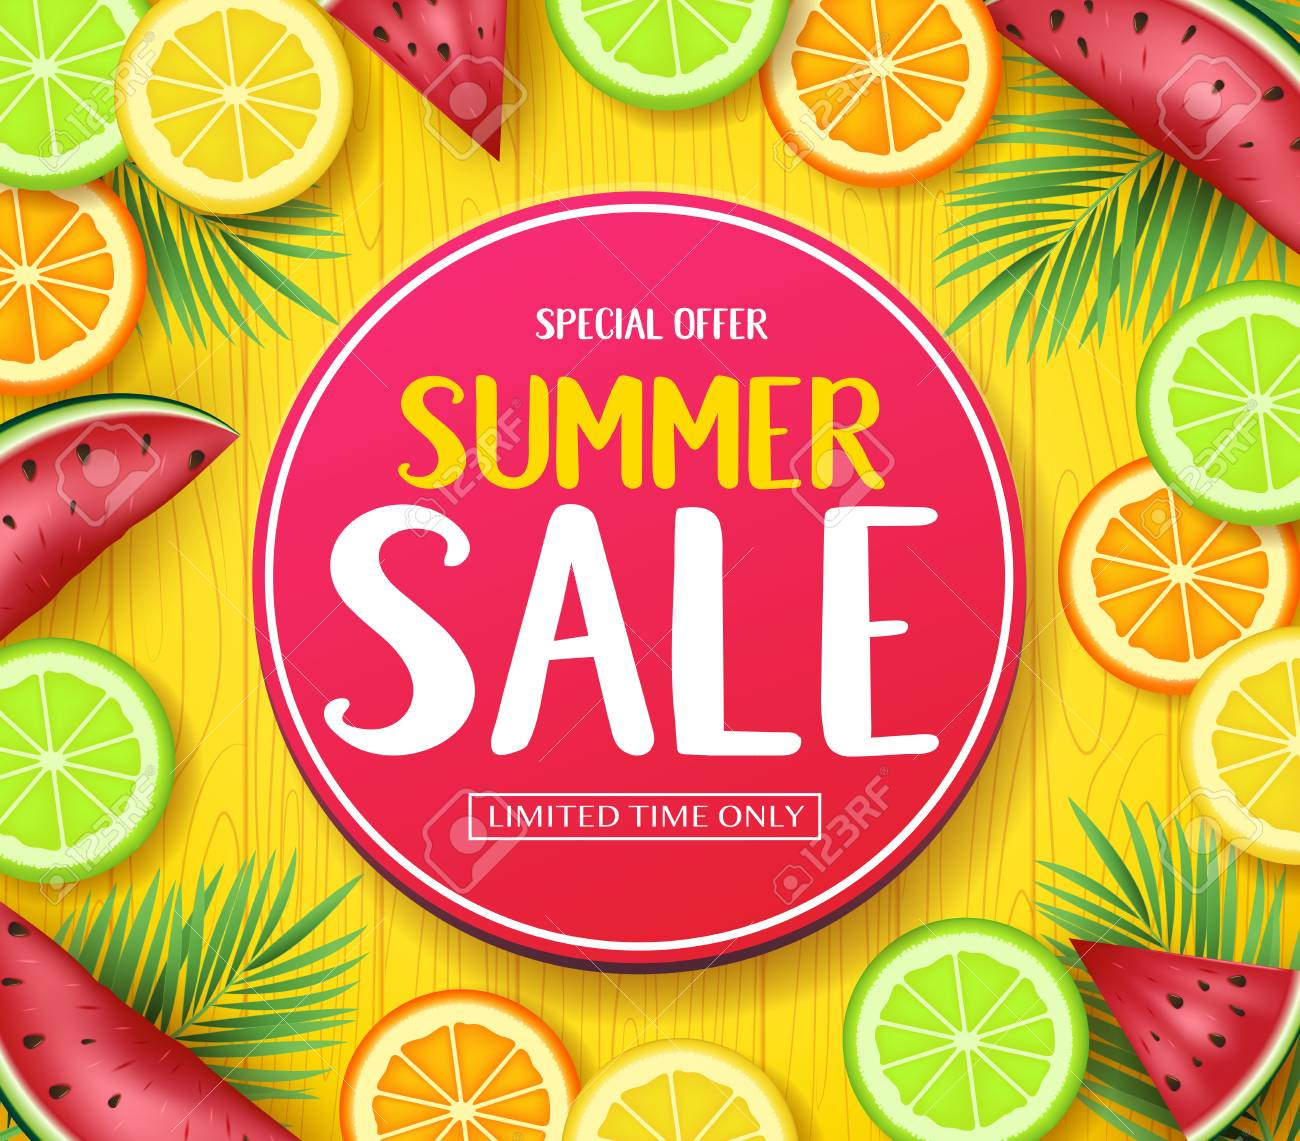 Special Offer Summer Sale in Circle Tag Poster with Tropical